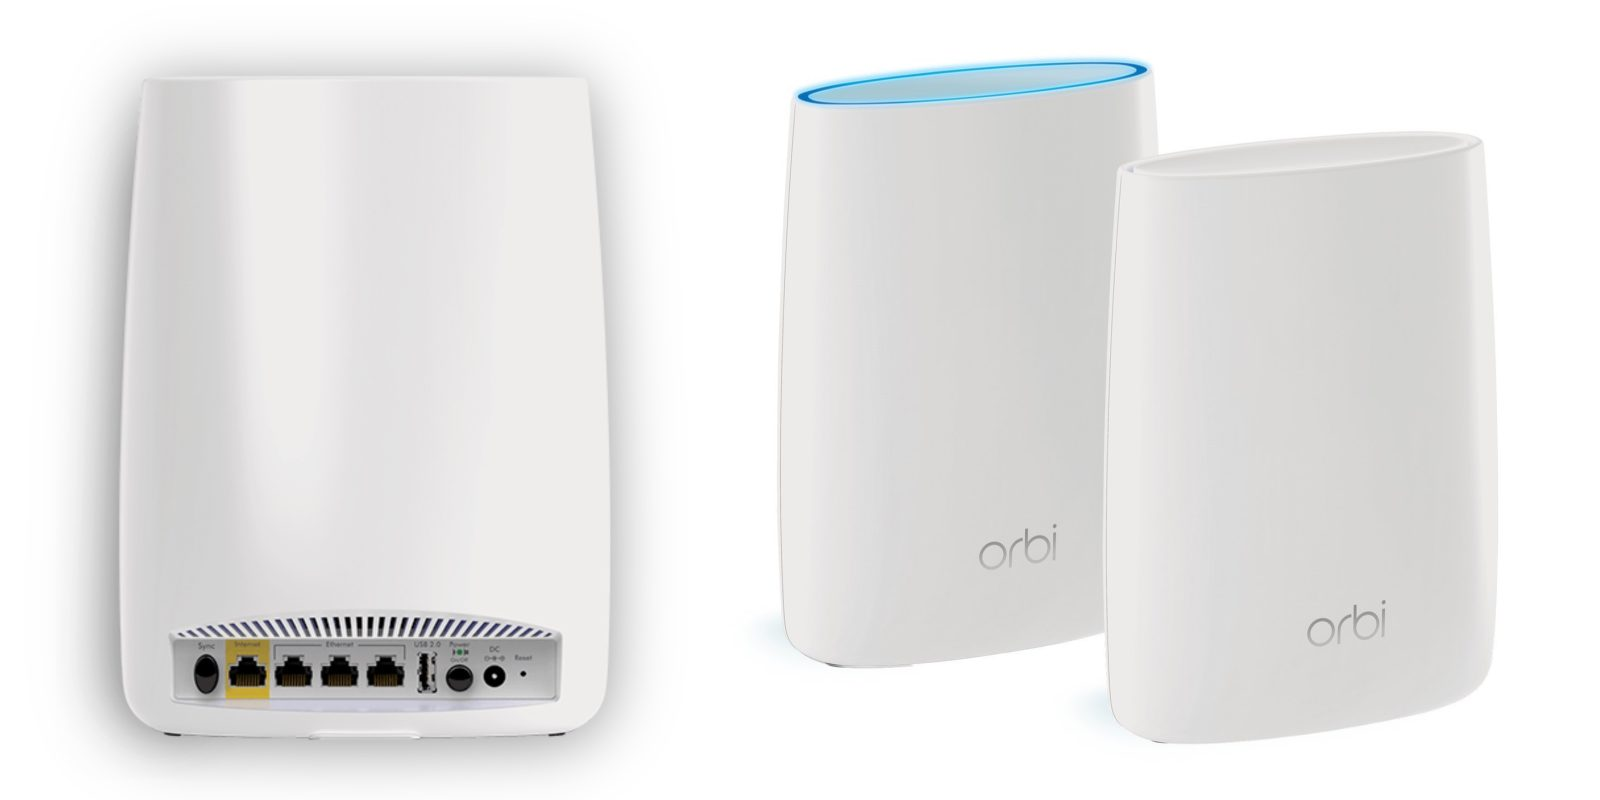 review netgear orbi mesh system blankets your home in fast wifi [ 1600 x 800 Pixel ]